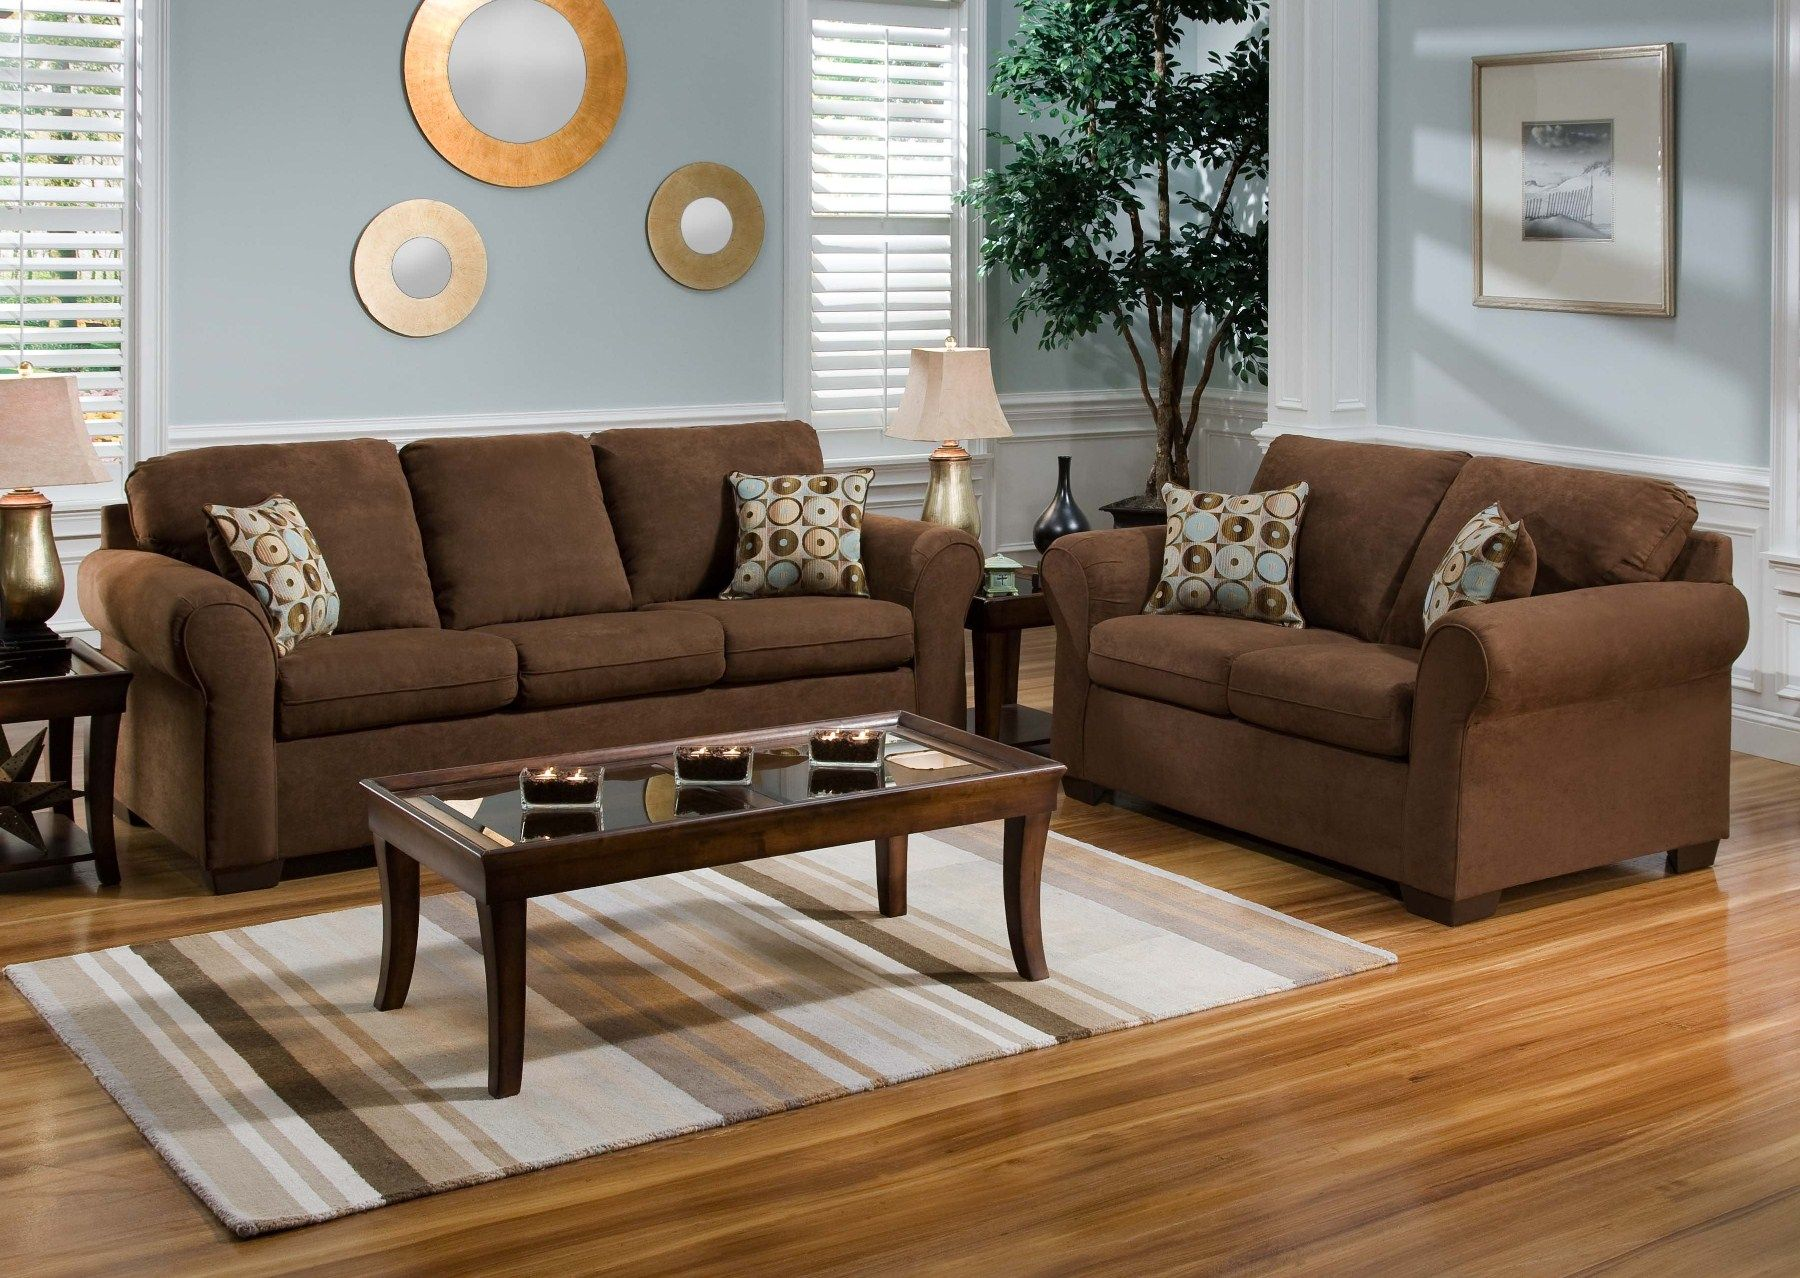 Living Room Colour Schemes Brown Sofa Furniture Arrangement Around A Tv Warm Color With Chocolate Couch And Rectangle Glass Coffee Table